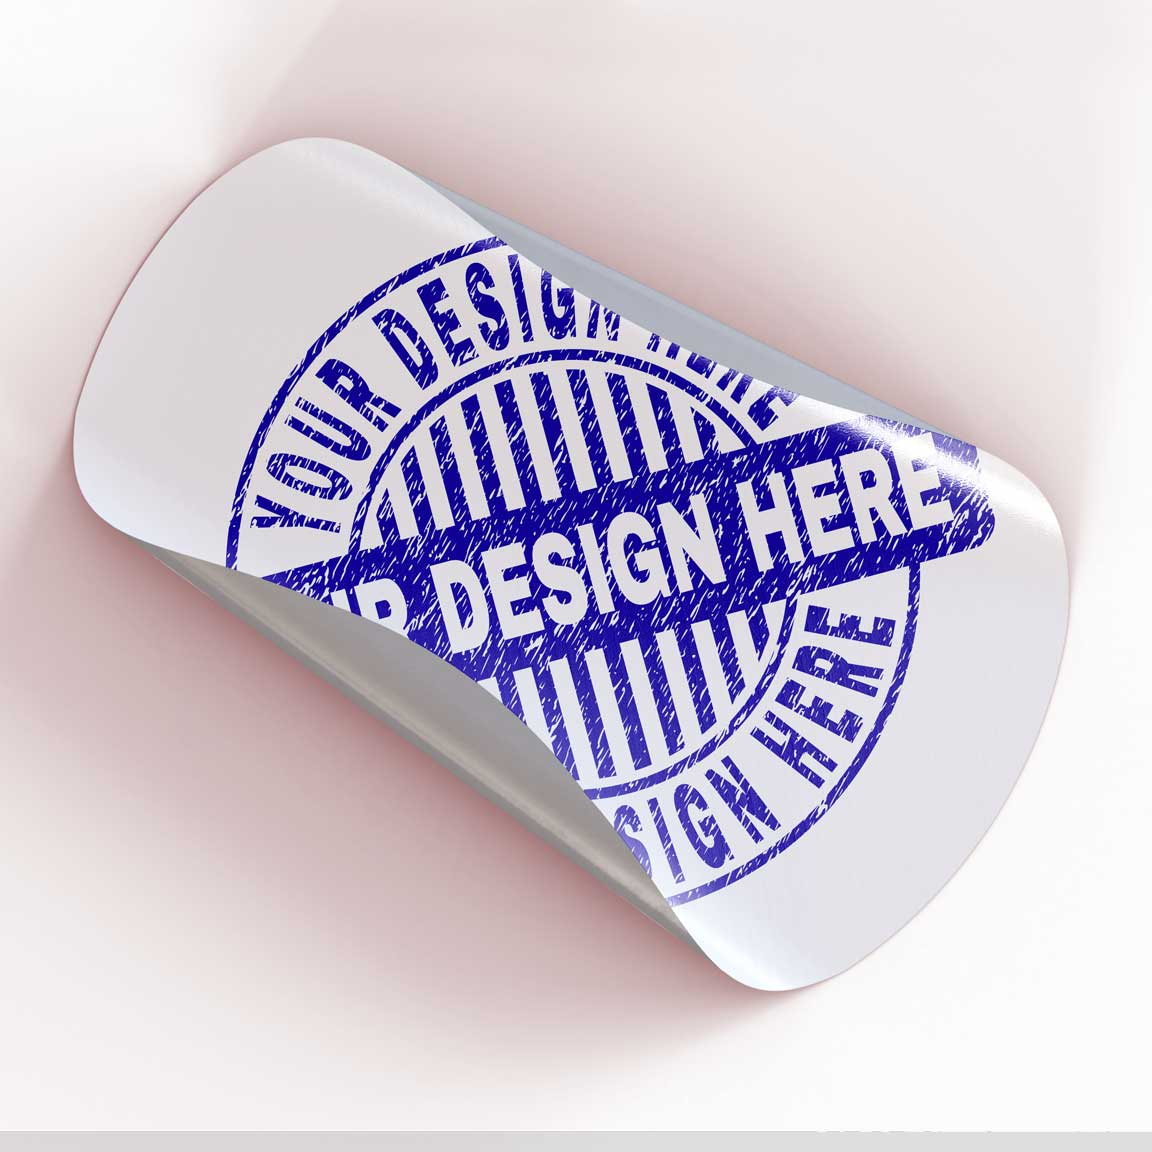 Premium decals die-cut into the shape of a circle.